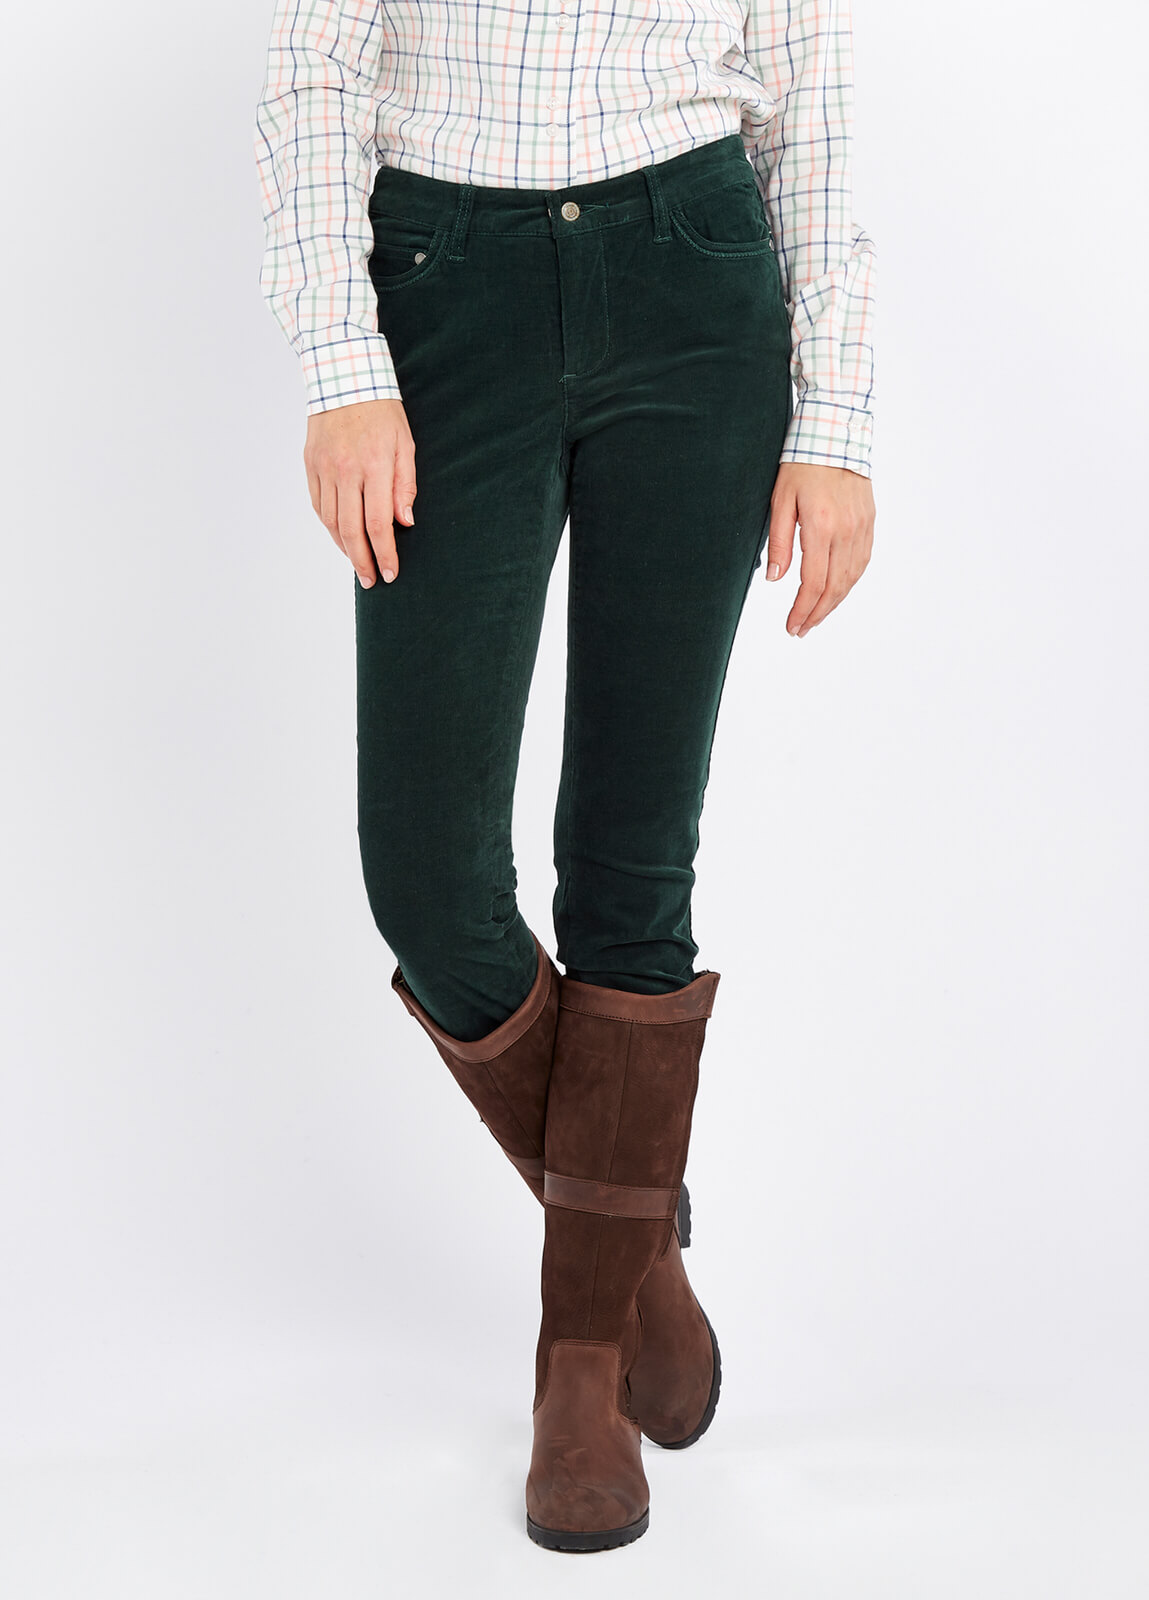 Dubarry_Honeysuckle_Jeans_Verdigris_on_model